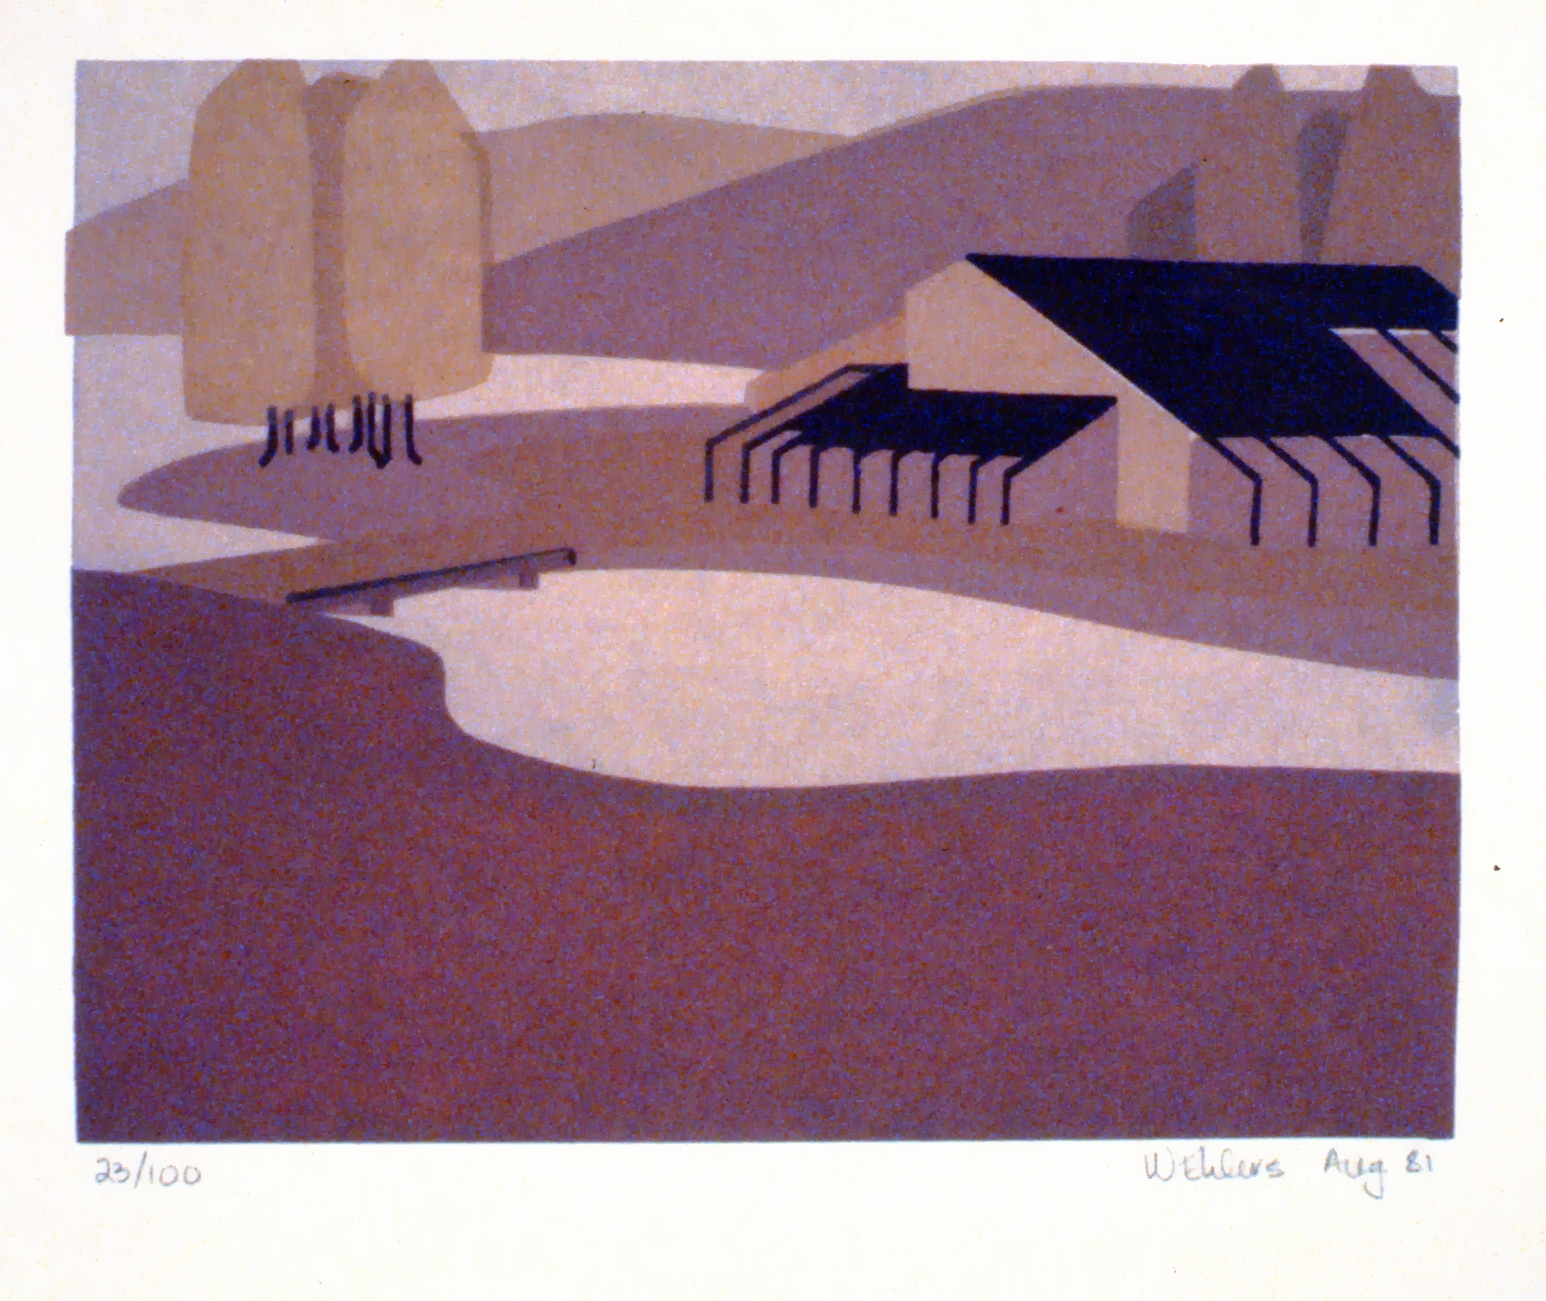 Untitled (Art Gallery of the South Okanagan), 1981, Wendy Ehlers, serigraph, edition 23/100, 14.2 x 18.2 cm,  1997.06.01. Gift of the artist